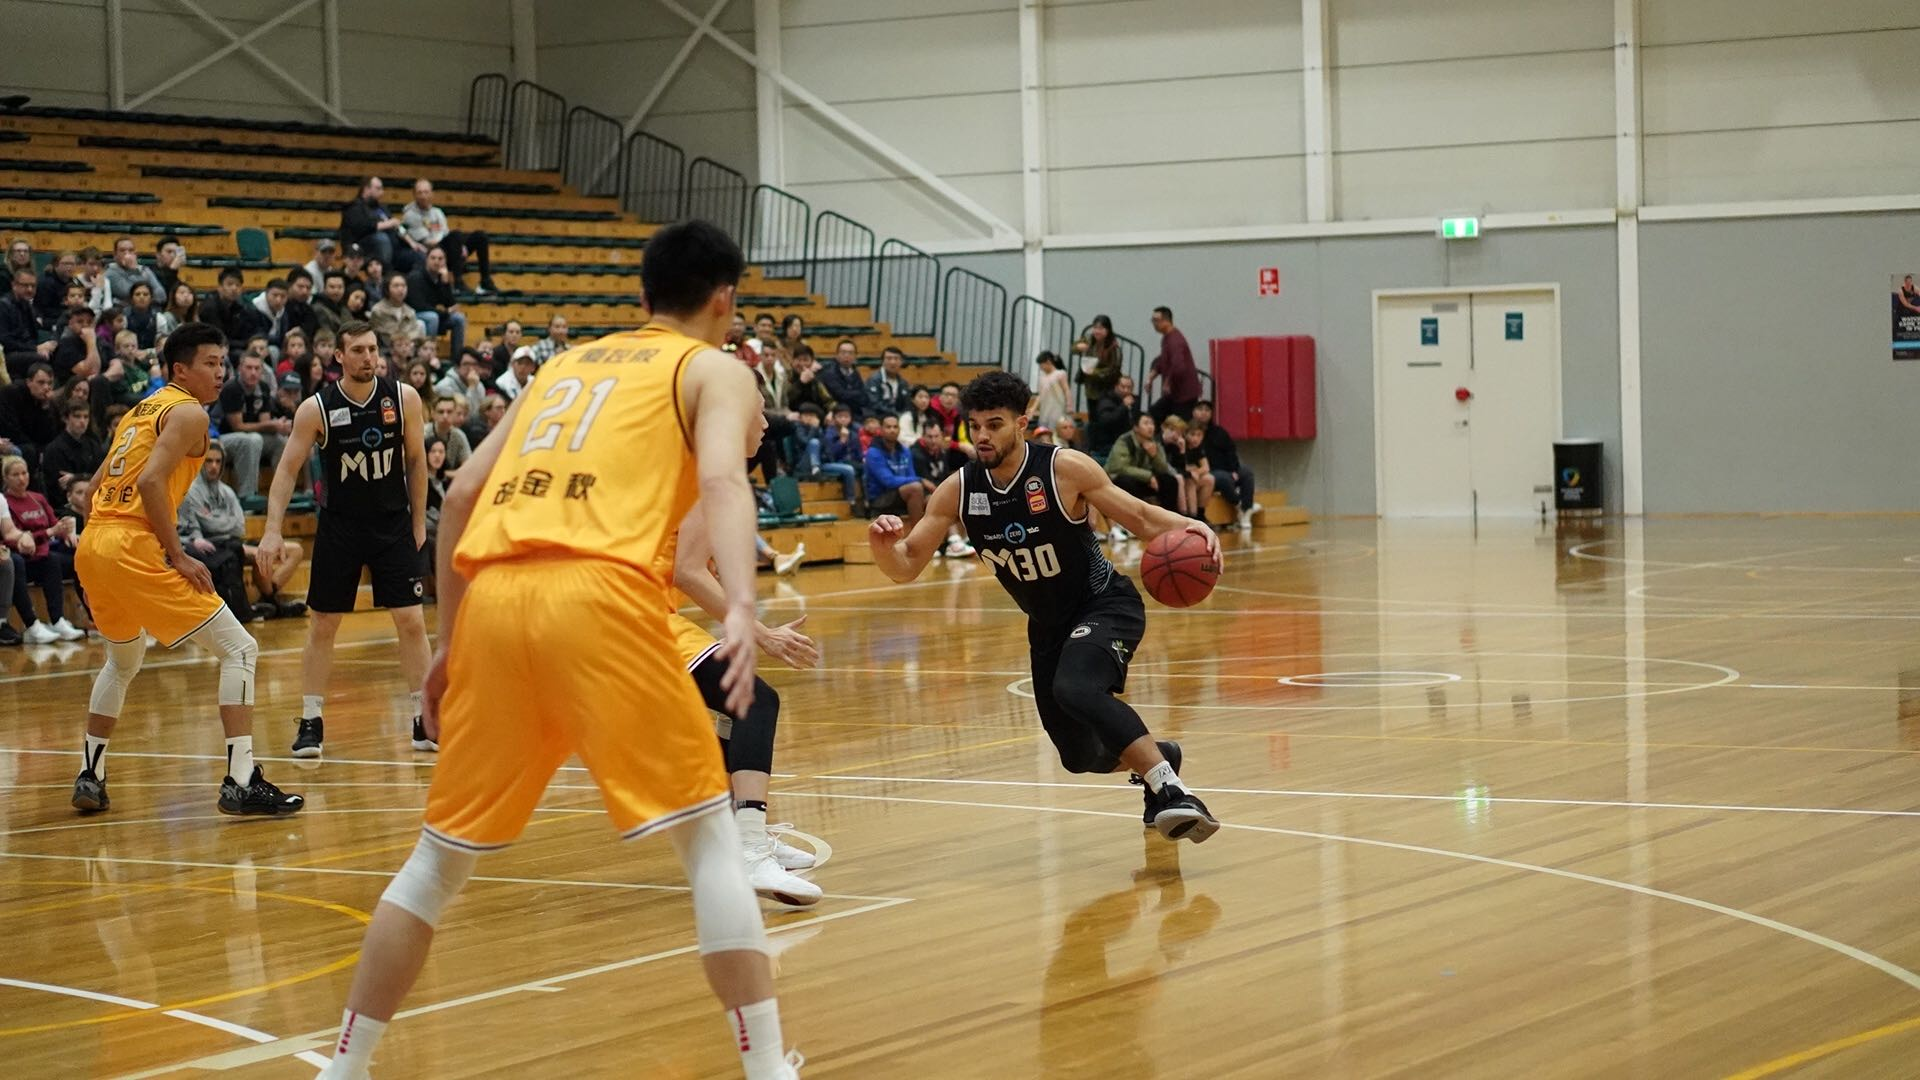 Melbourne United storm home against Zhejiang Guangsha Lions in pre-season match